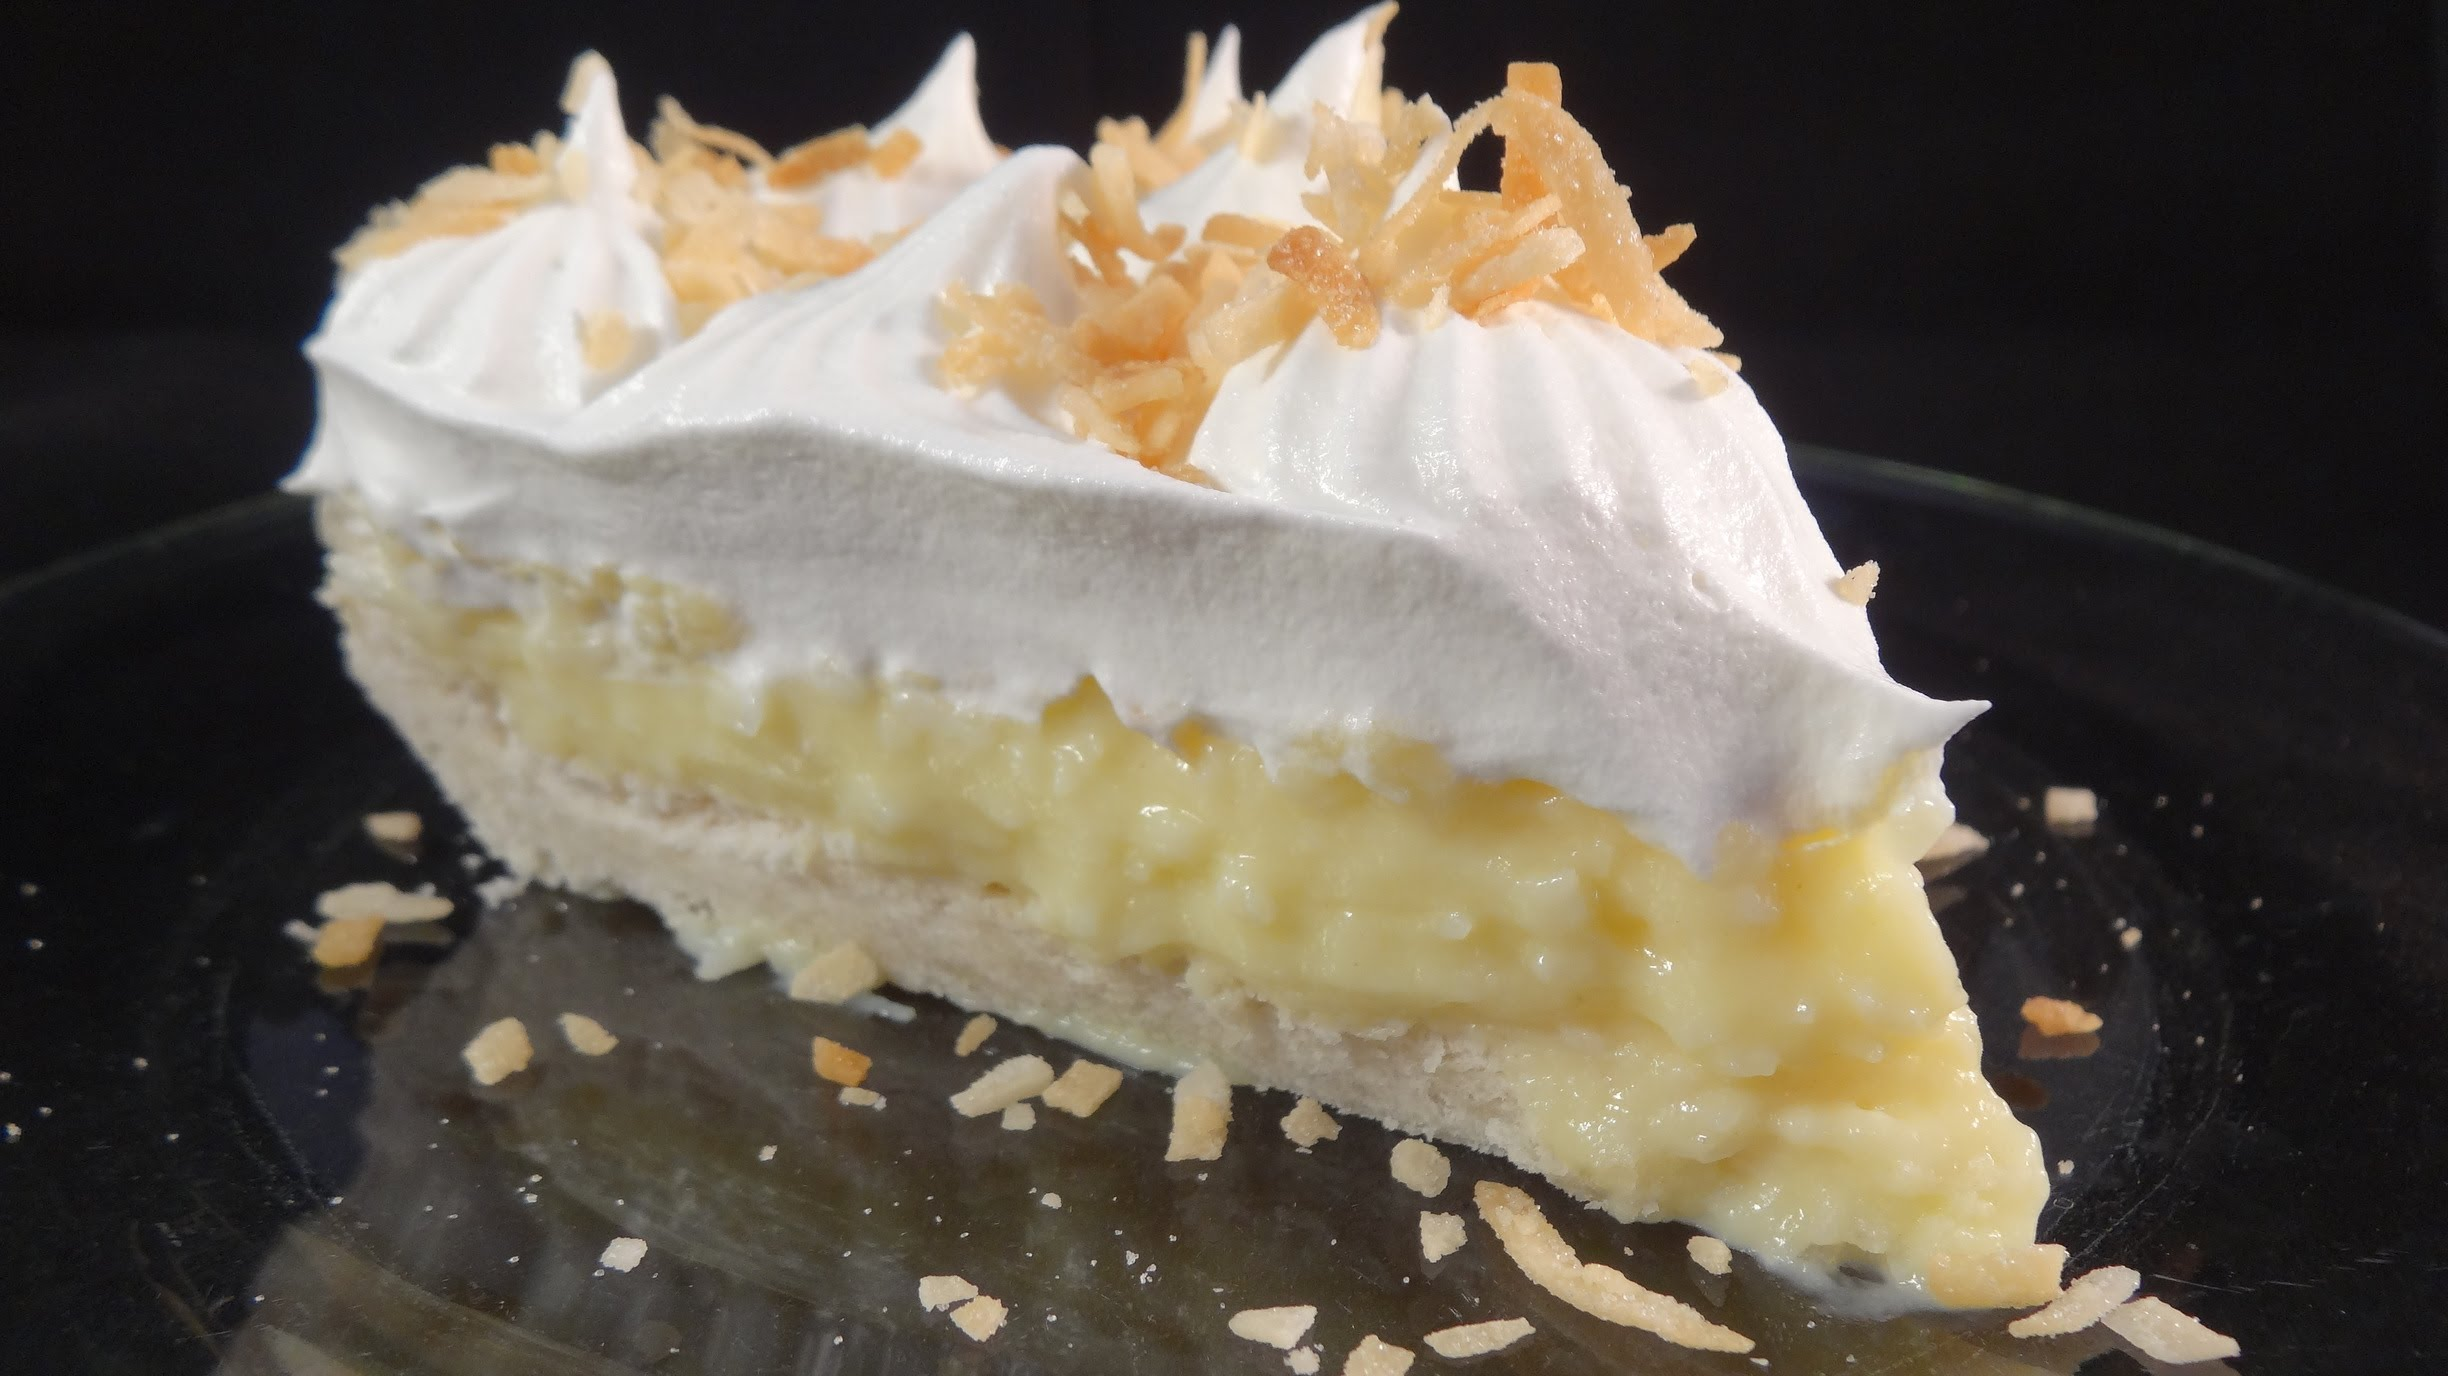 What An Awesome Coconut Cream Pie Recipe